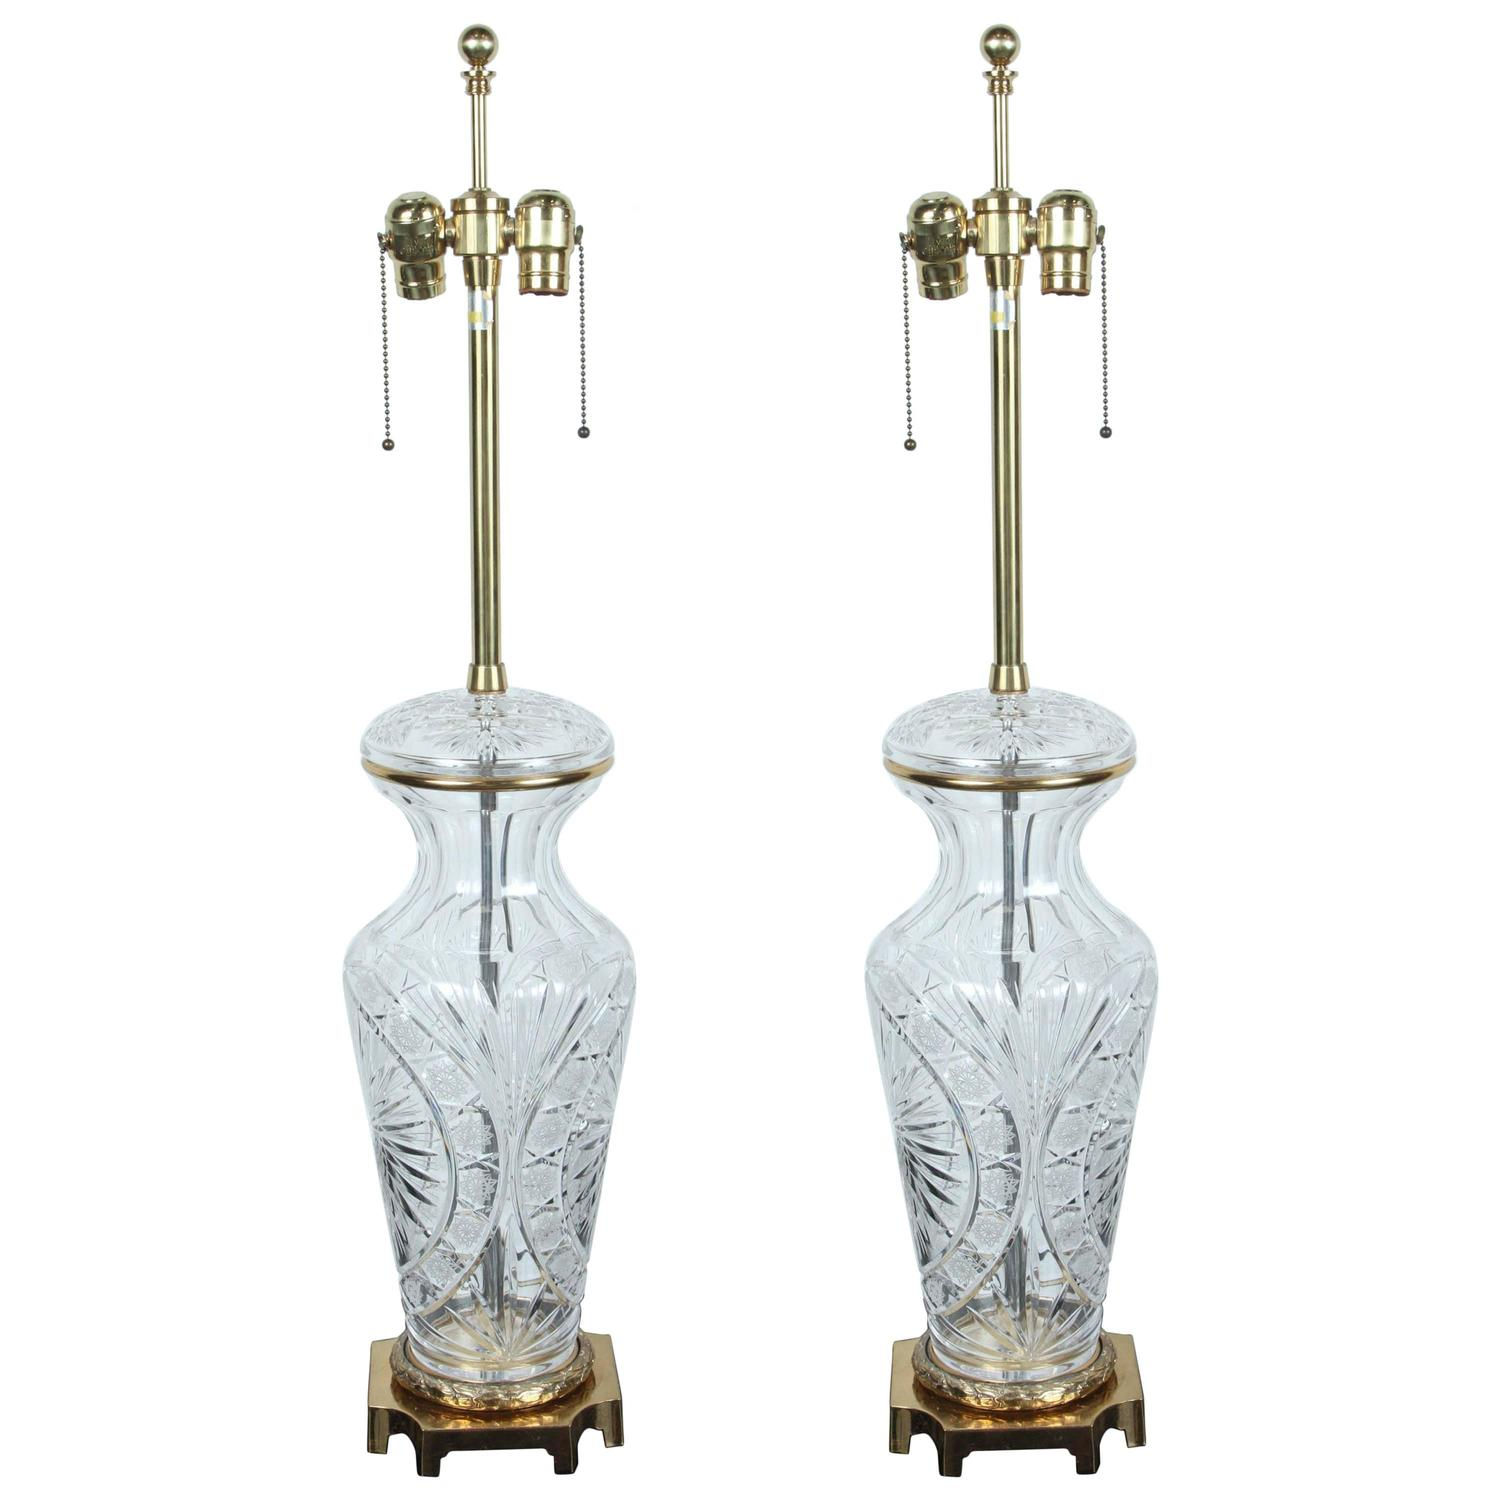 elegant pair of large crystal lamps by marbro at 1stdibs. Black Bedroom Furniture Sets. Home Design Ideas